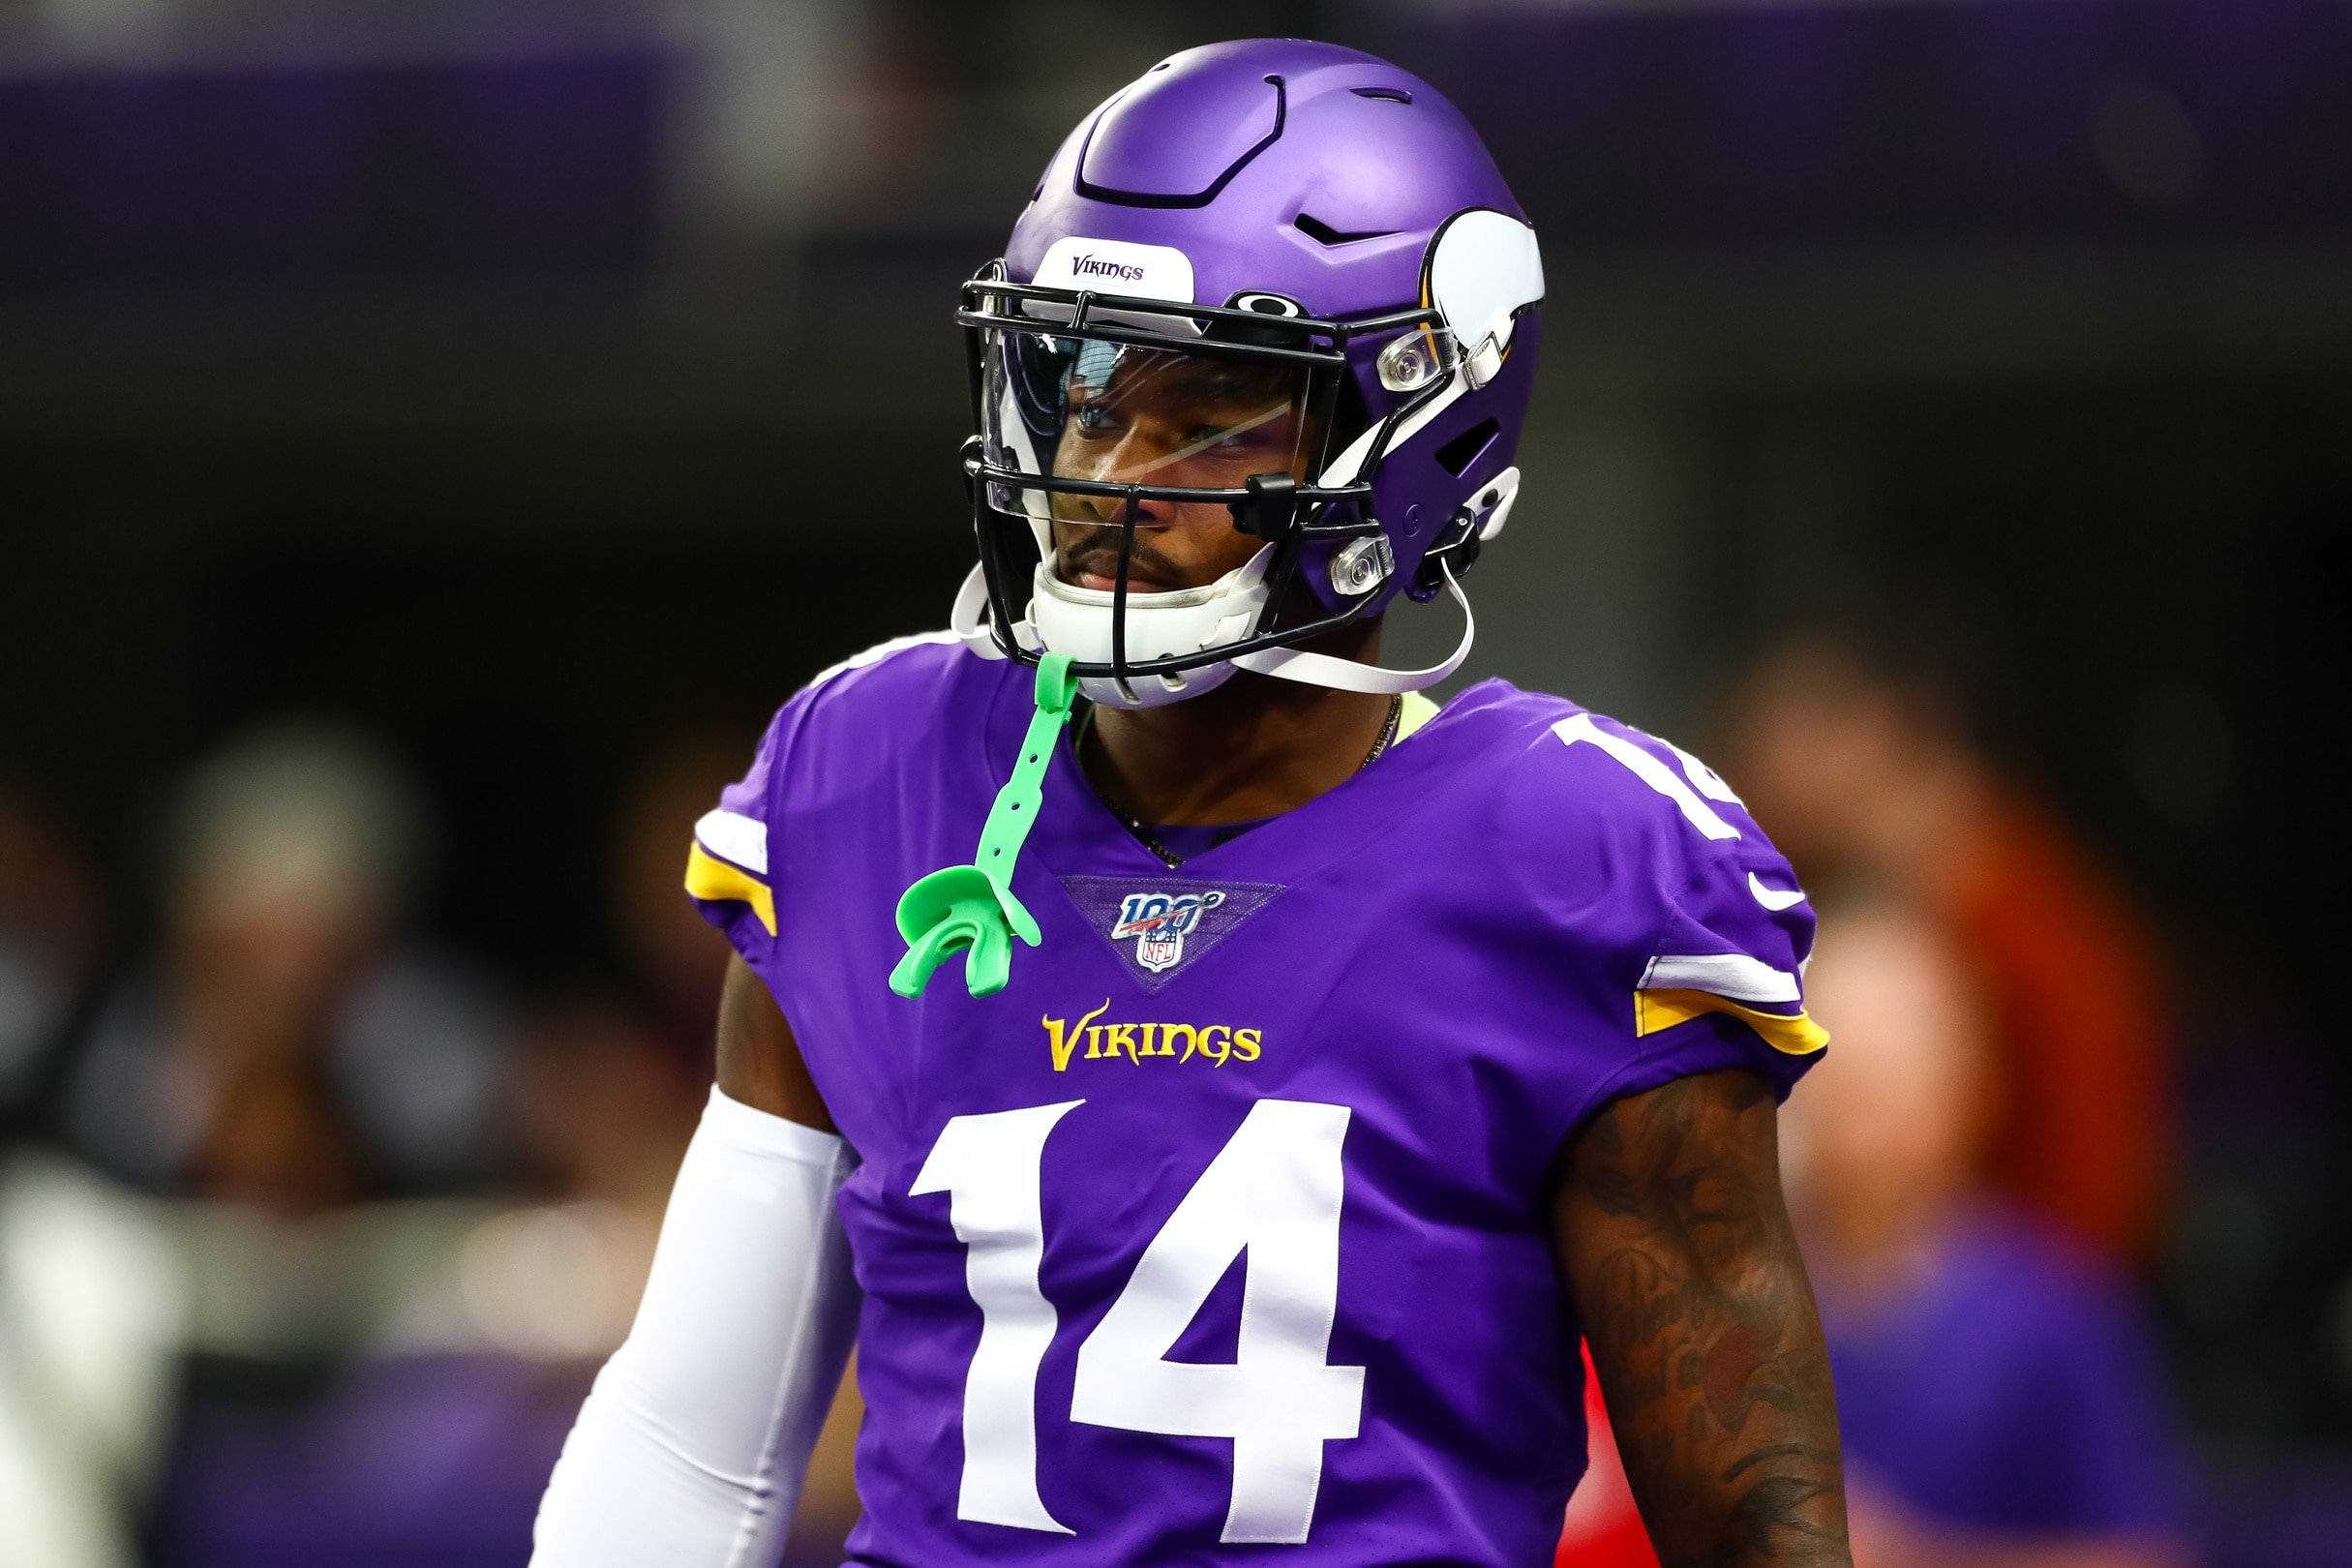 WATCH: Stefon Diggs torches Eagles' secondary for 62-yard TD